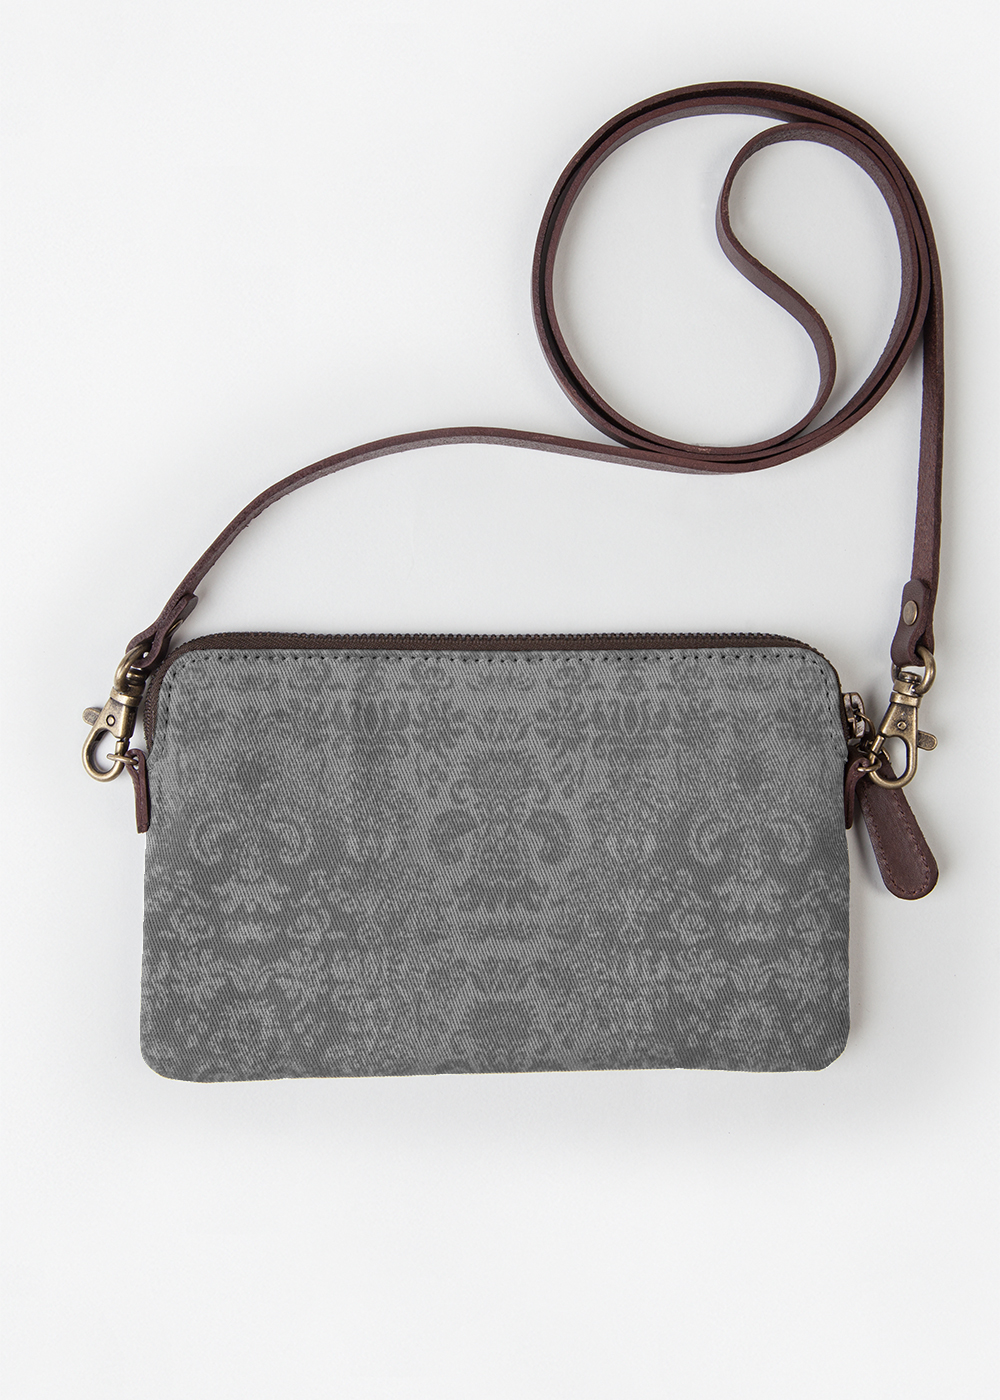 VIDA Statement Bag - Kay Duncan Serenity Bag M by VIDA GtAm9TIm6